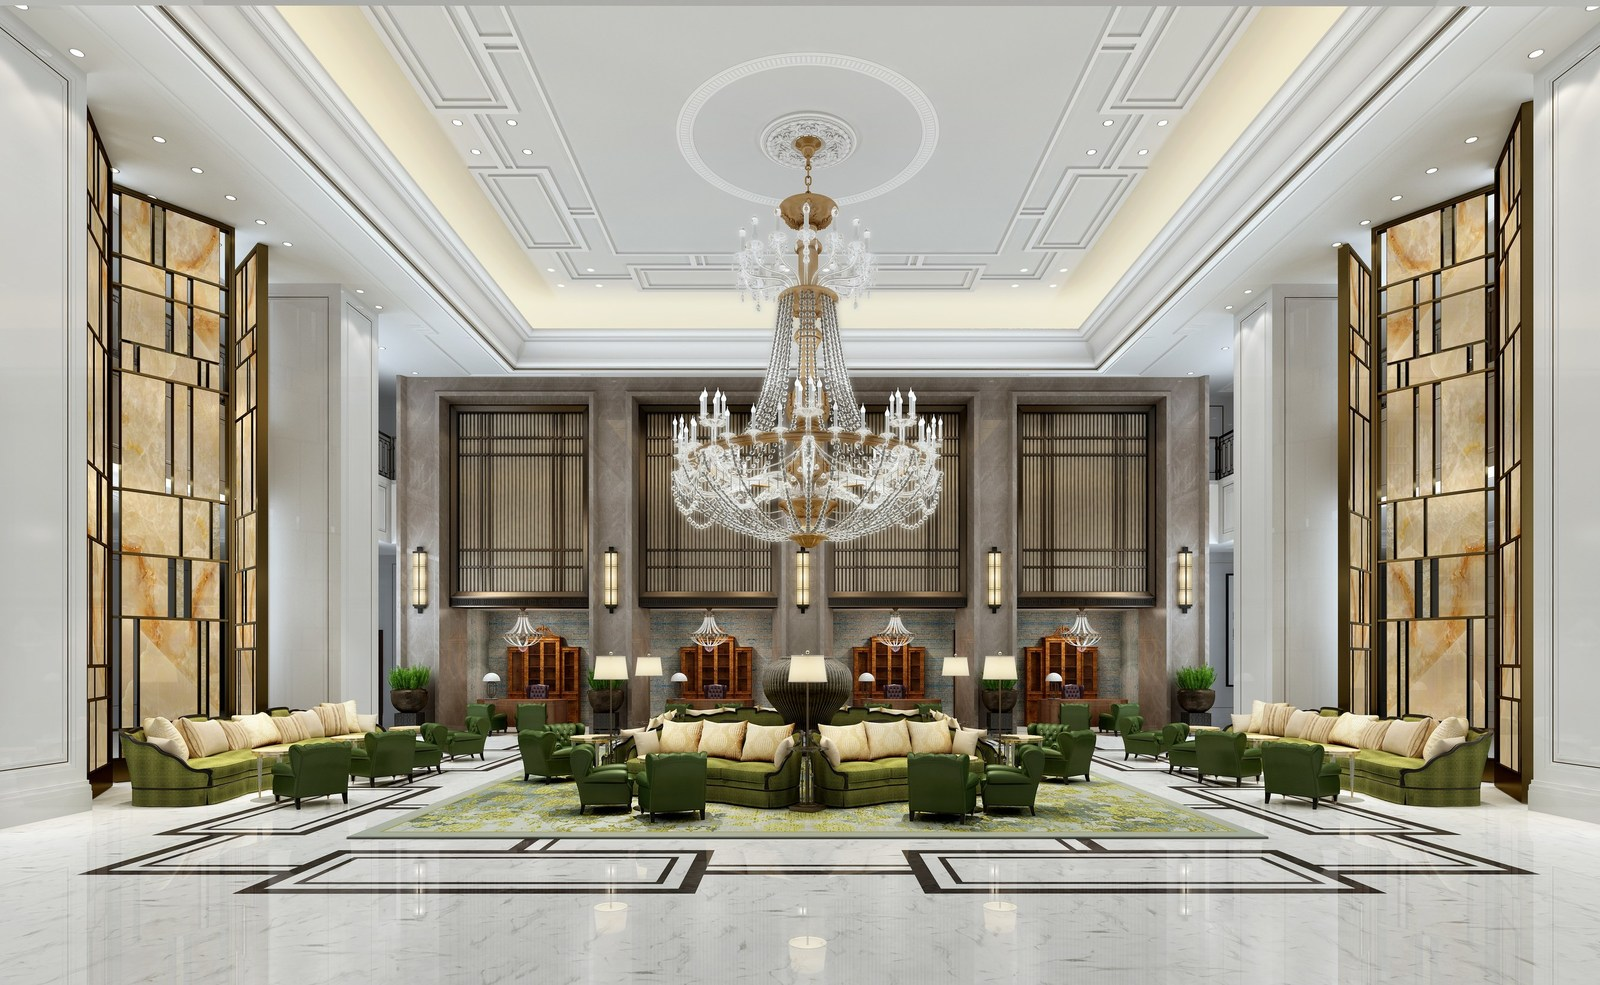 St regis hotels resorts opens in the heart of shanghai for St regis